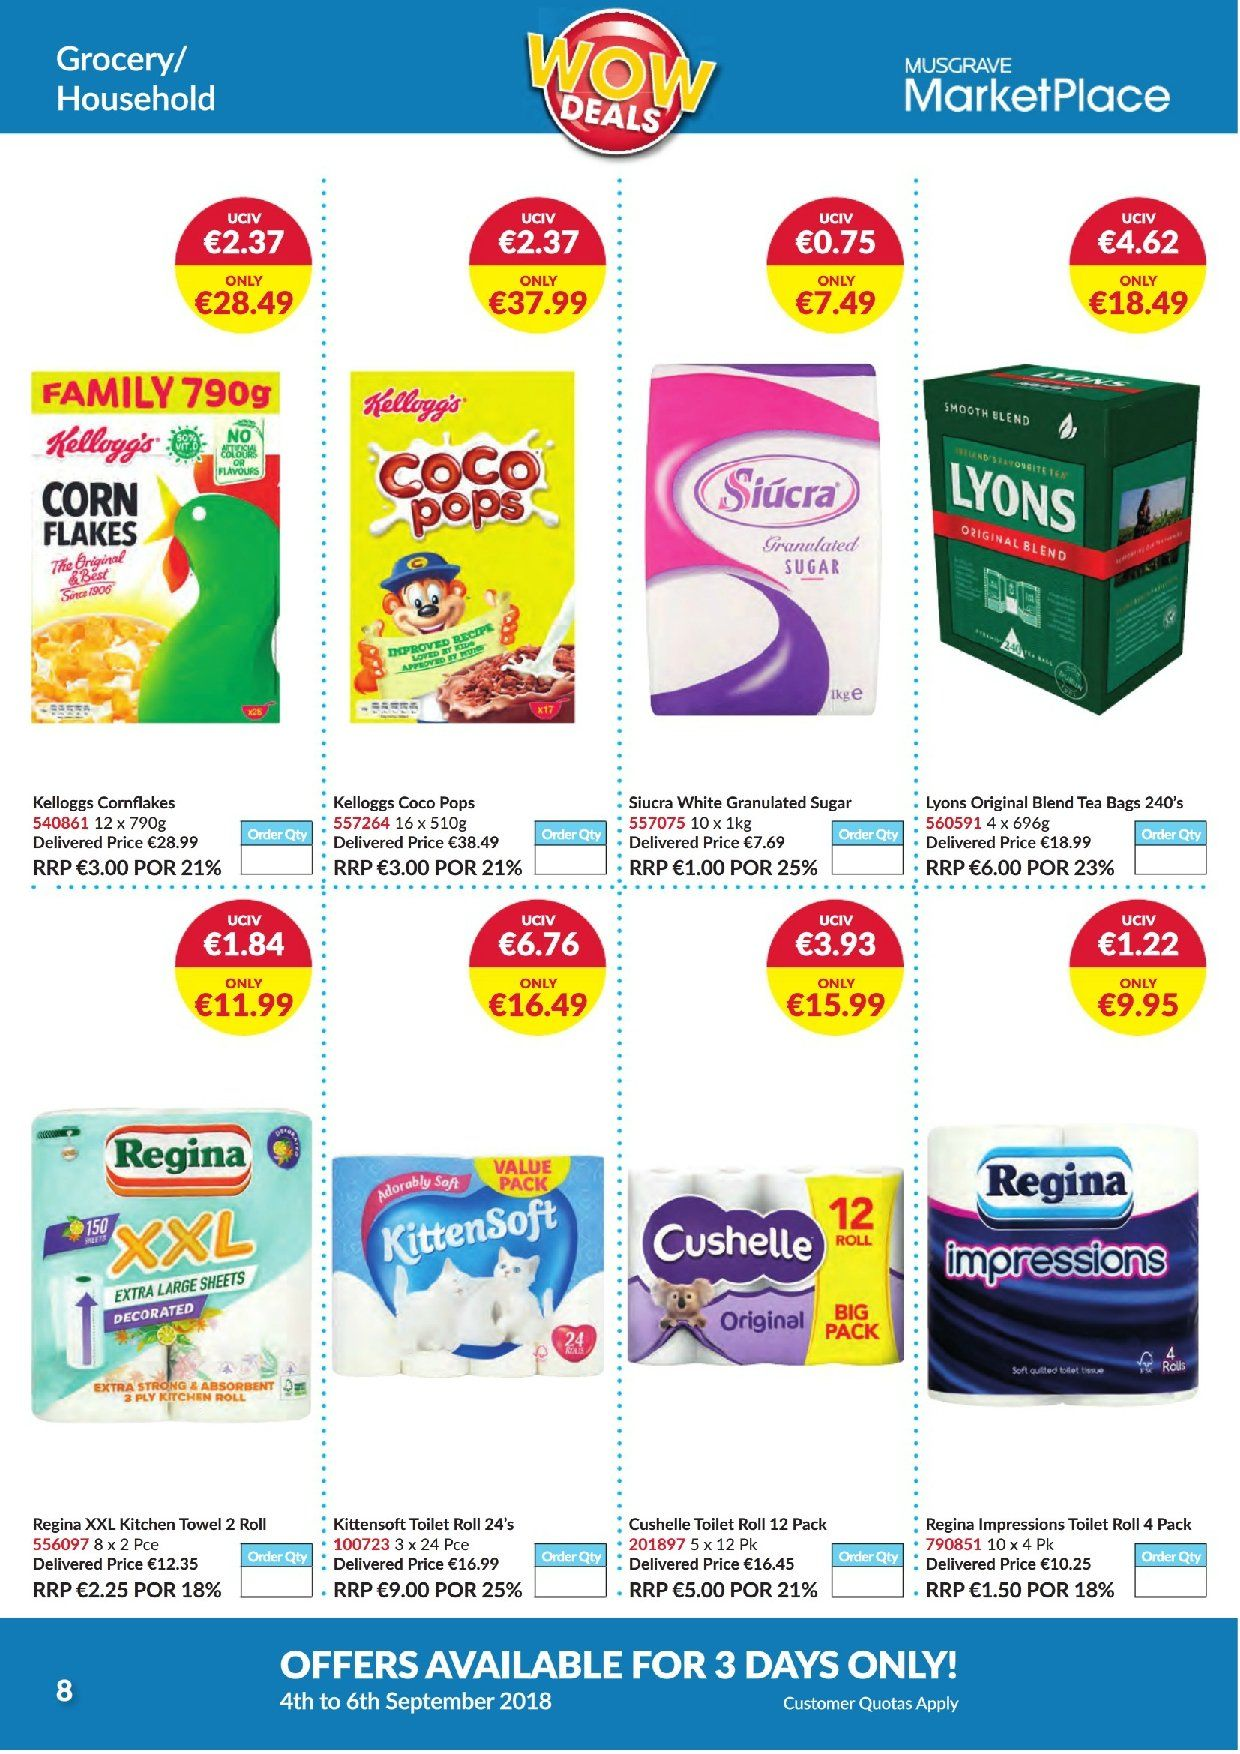 MUSGRAVE Market Place offer  - 4.9.2018 - 6.9.2018 - Sales products - granulated sugar, sugar, corn flakes, coco pops, tea bags, Lyons, kitchen roll. Page 8.